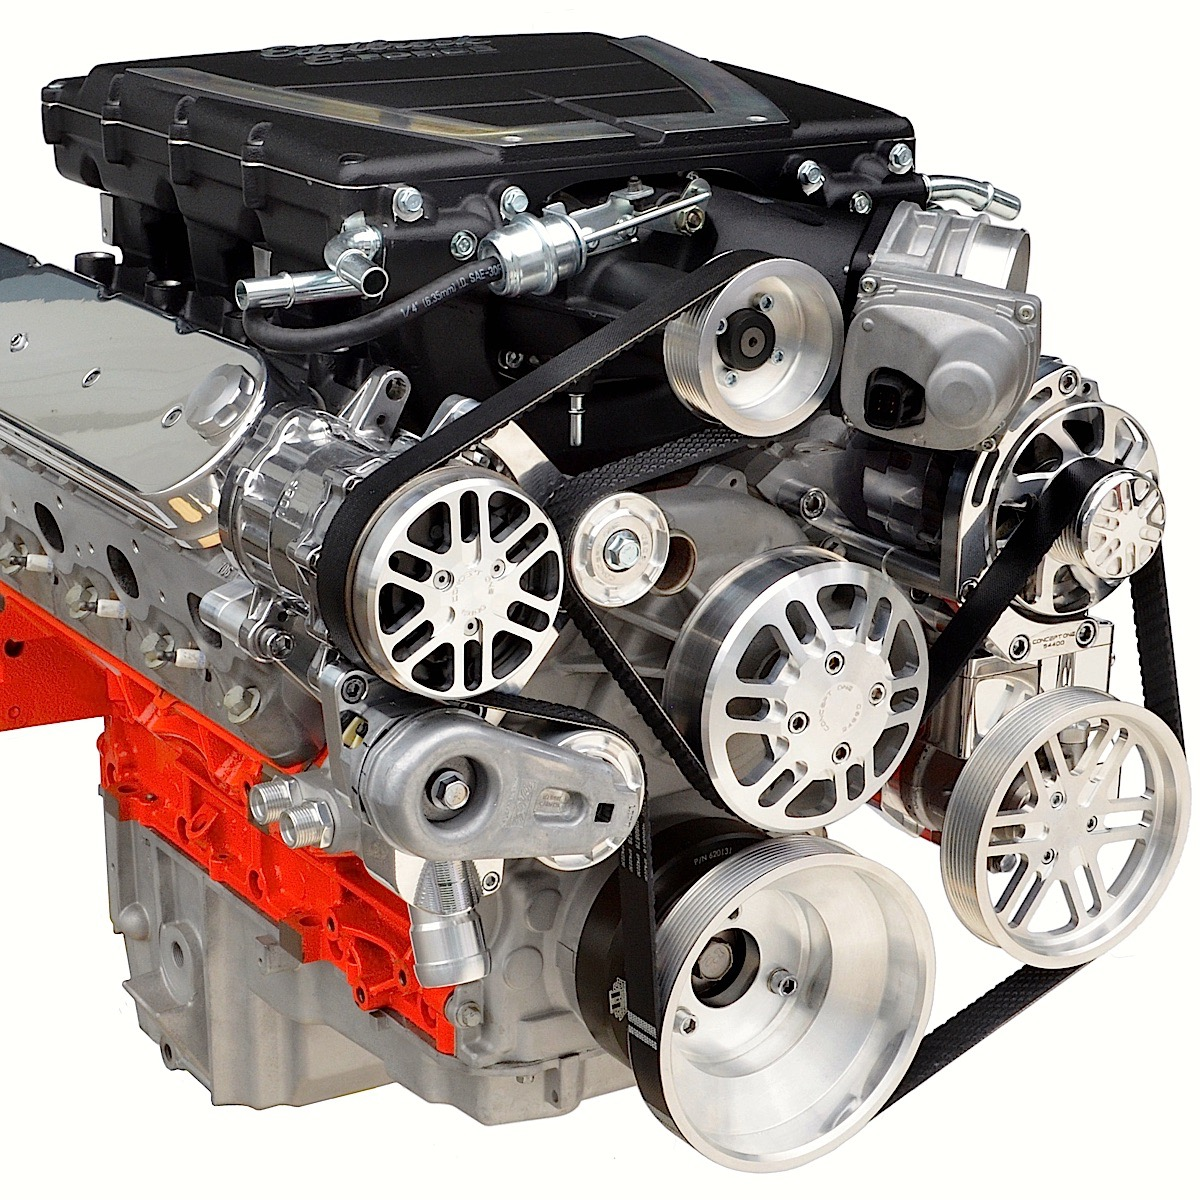 Whipple Superchargers Ls2: Concept One Kits Simplify Supercharger Installs On LS Engines